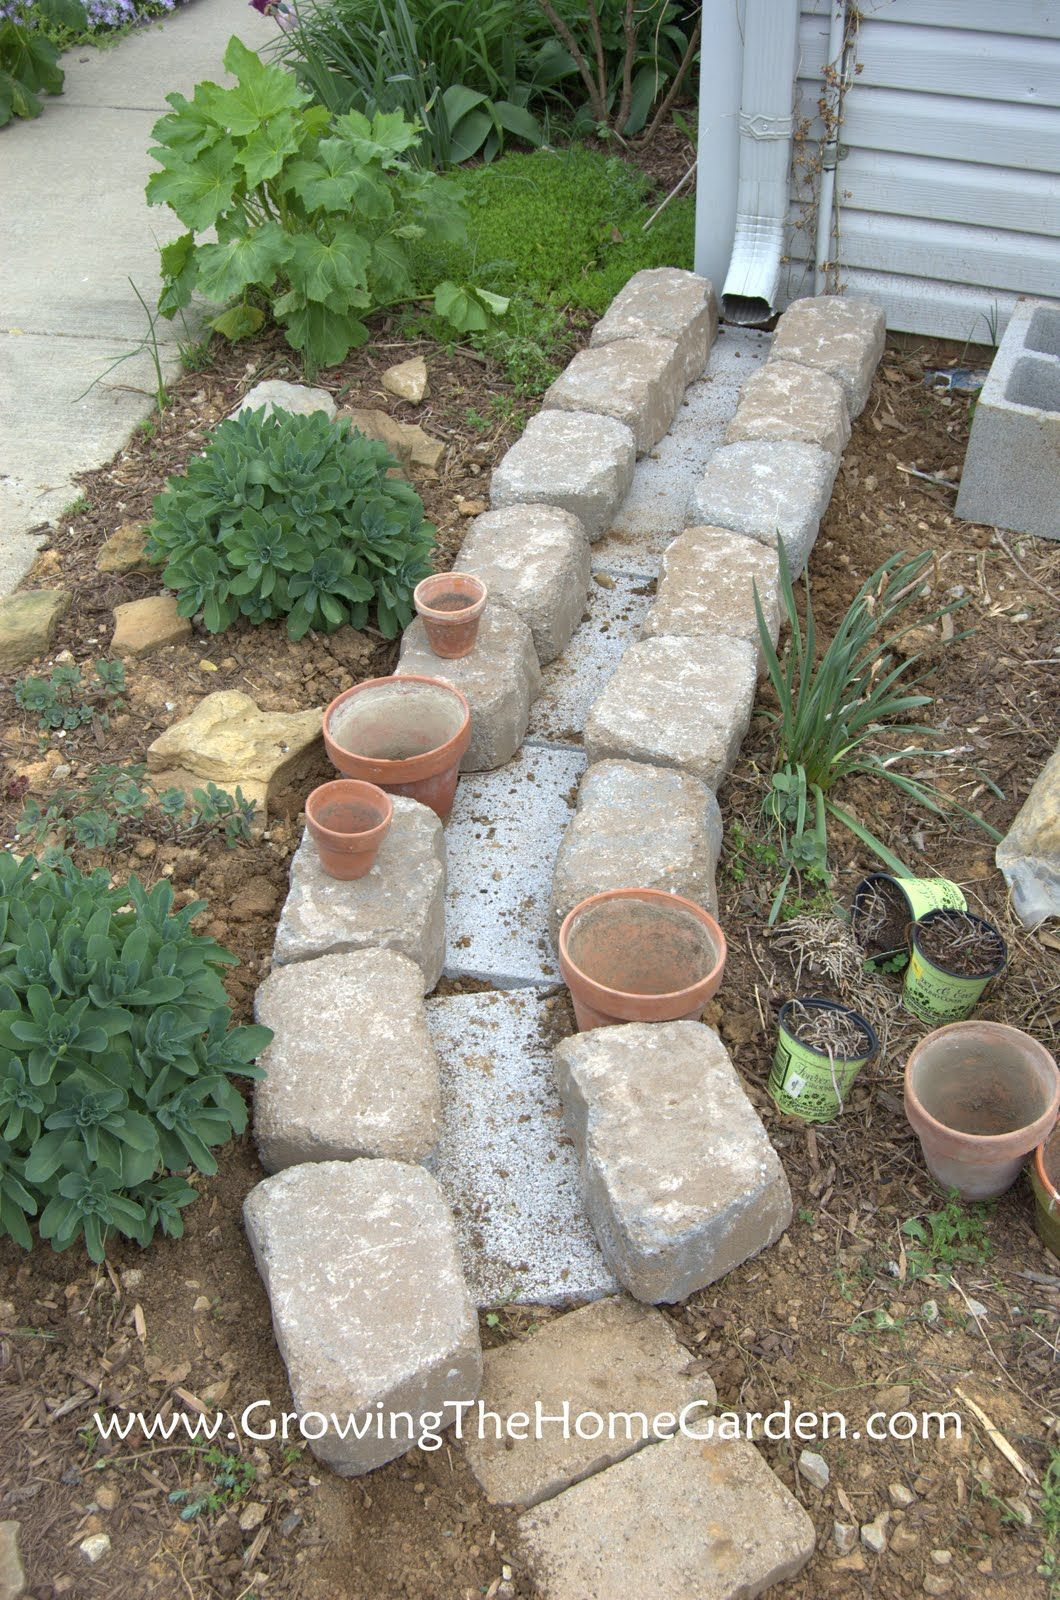 5 ways to stop runoff from ruining your lawn french drain lawn